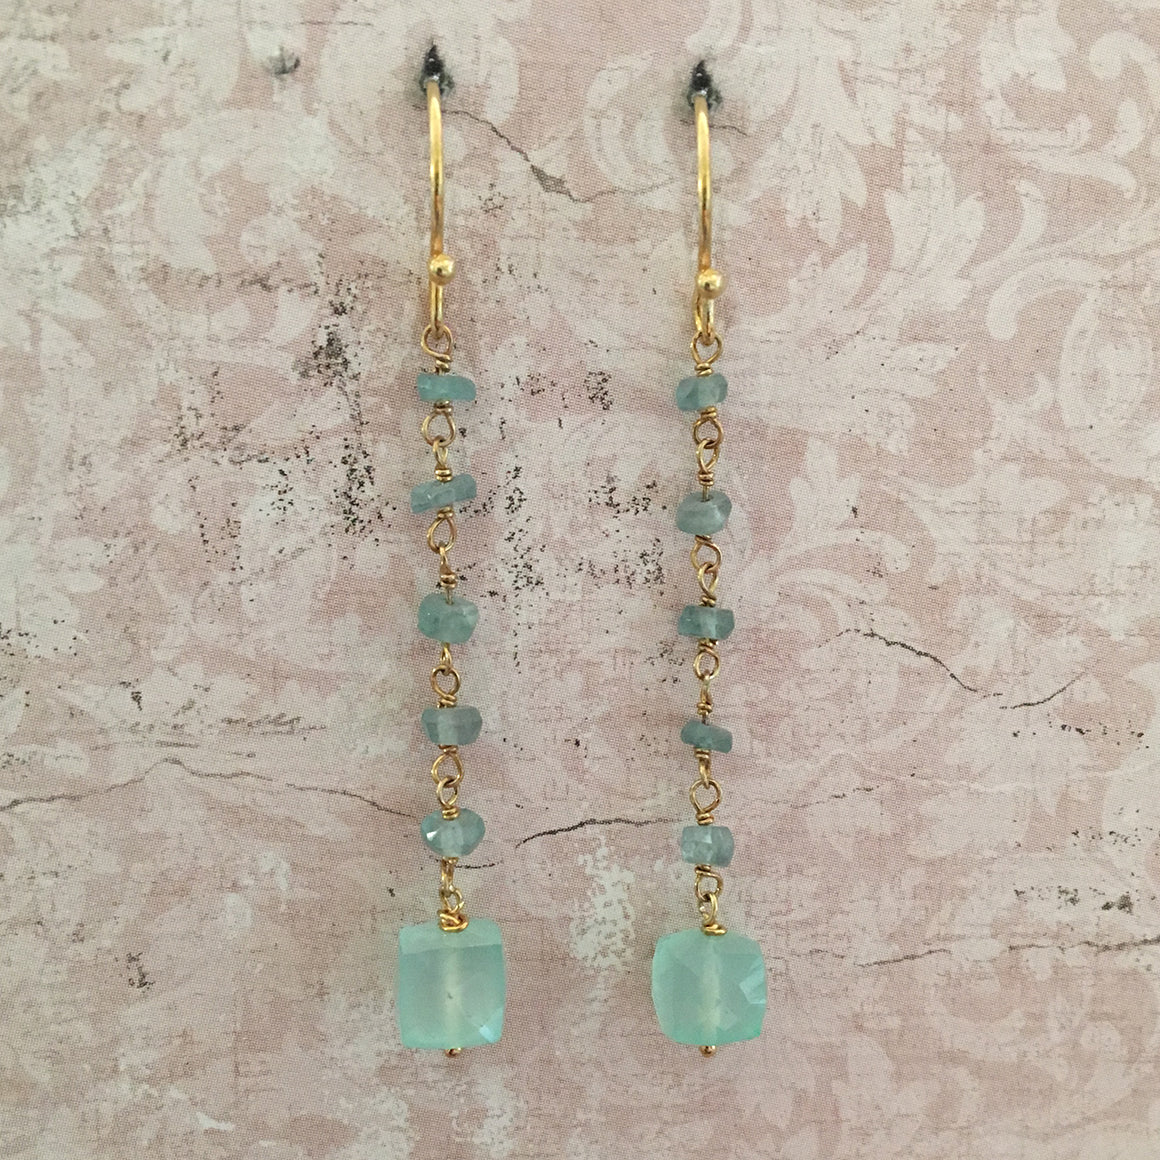 Aqua Chalcedony Cube and Apatite Chain Earrings